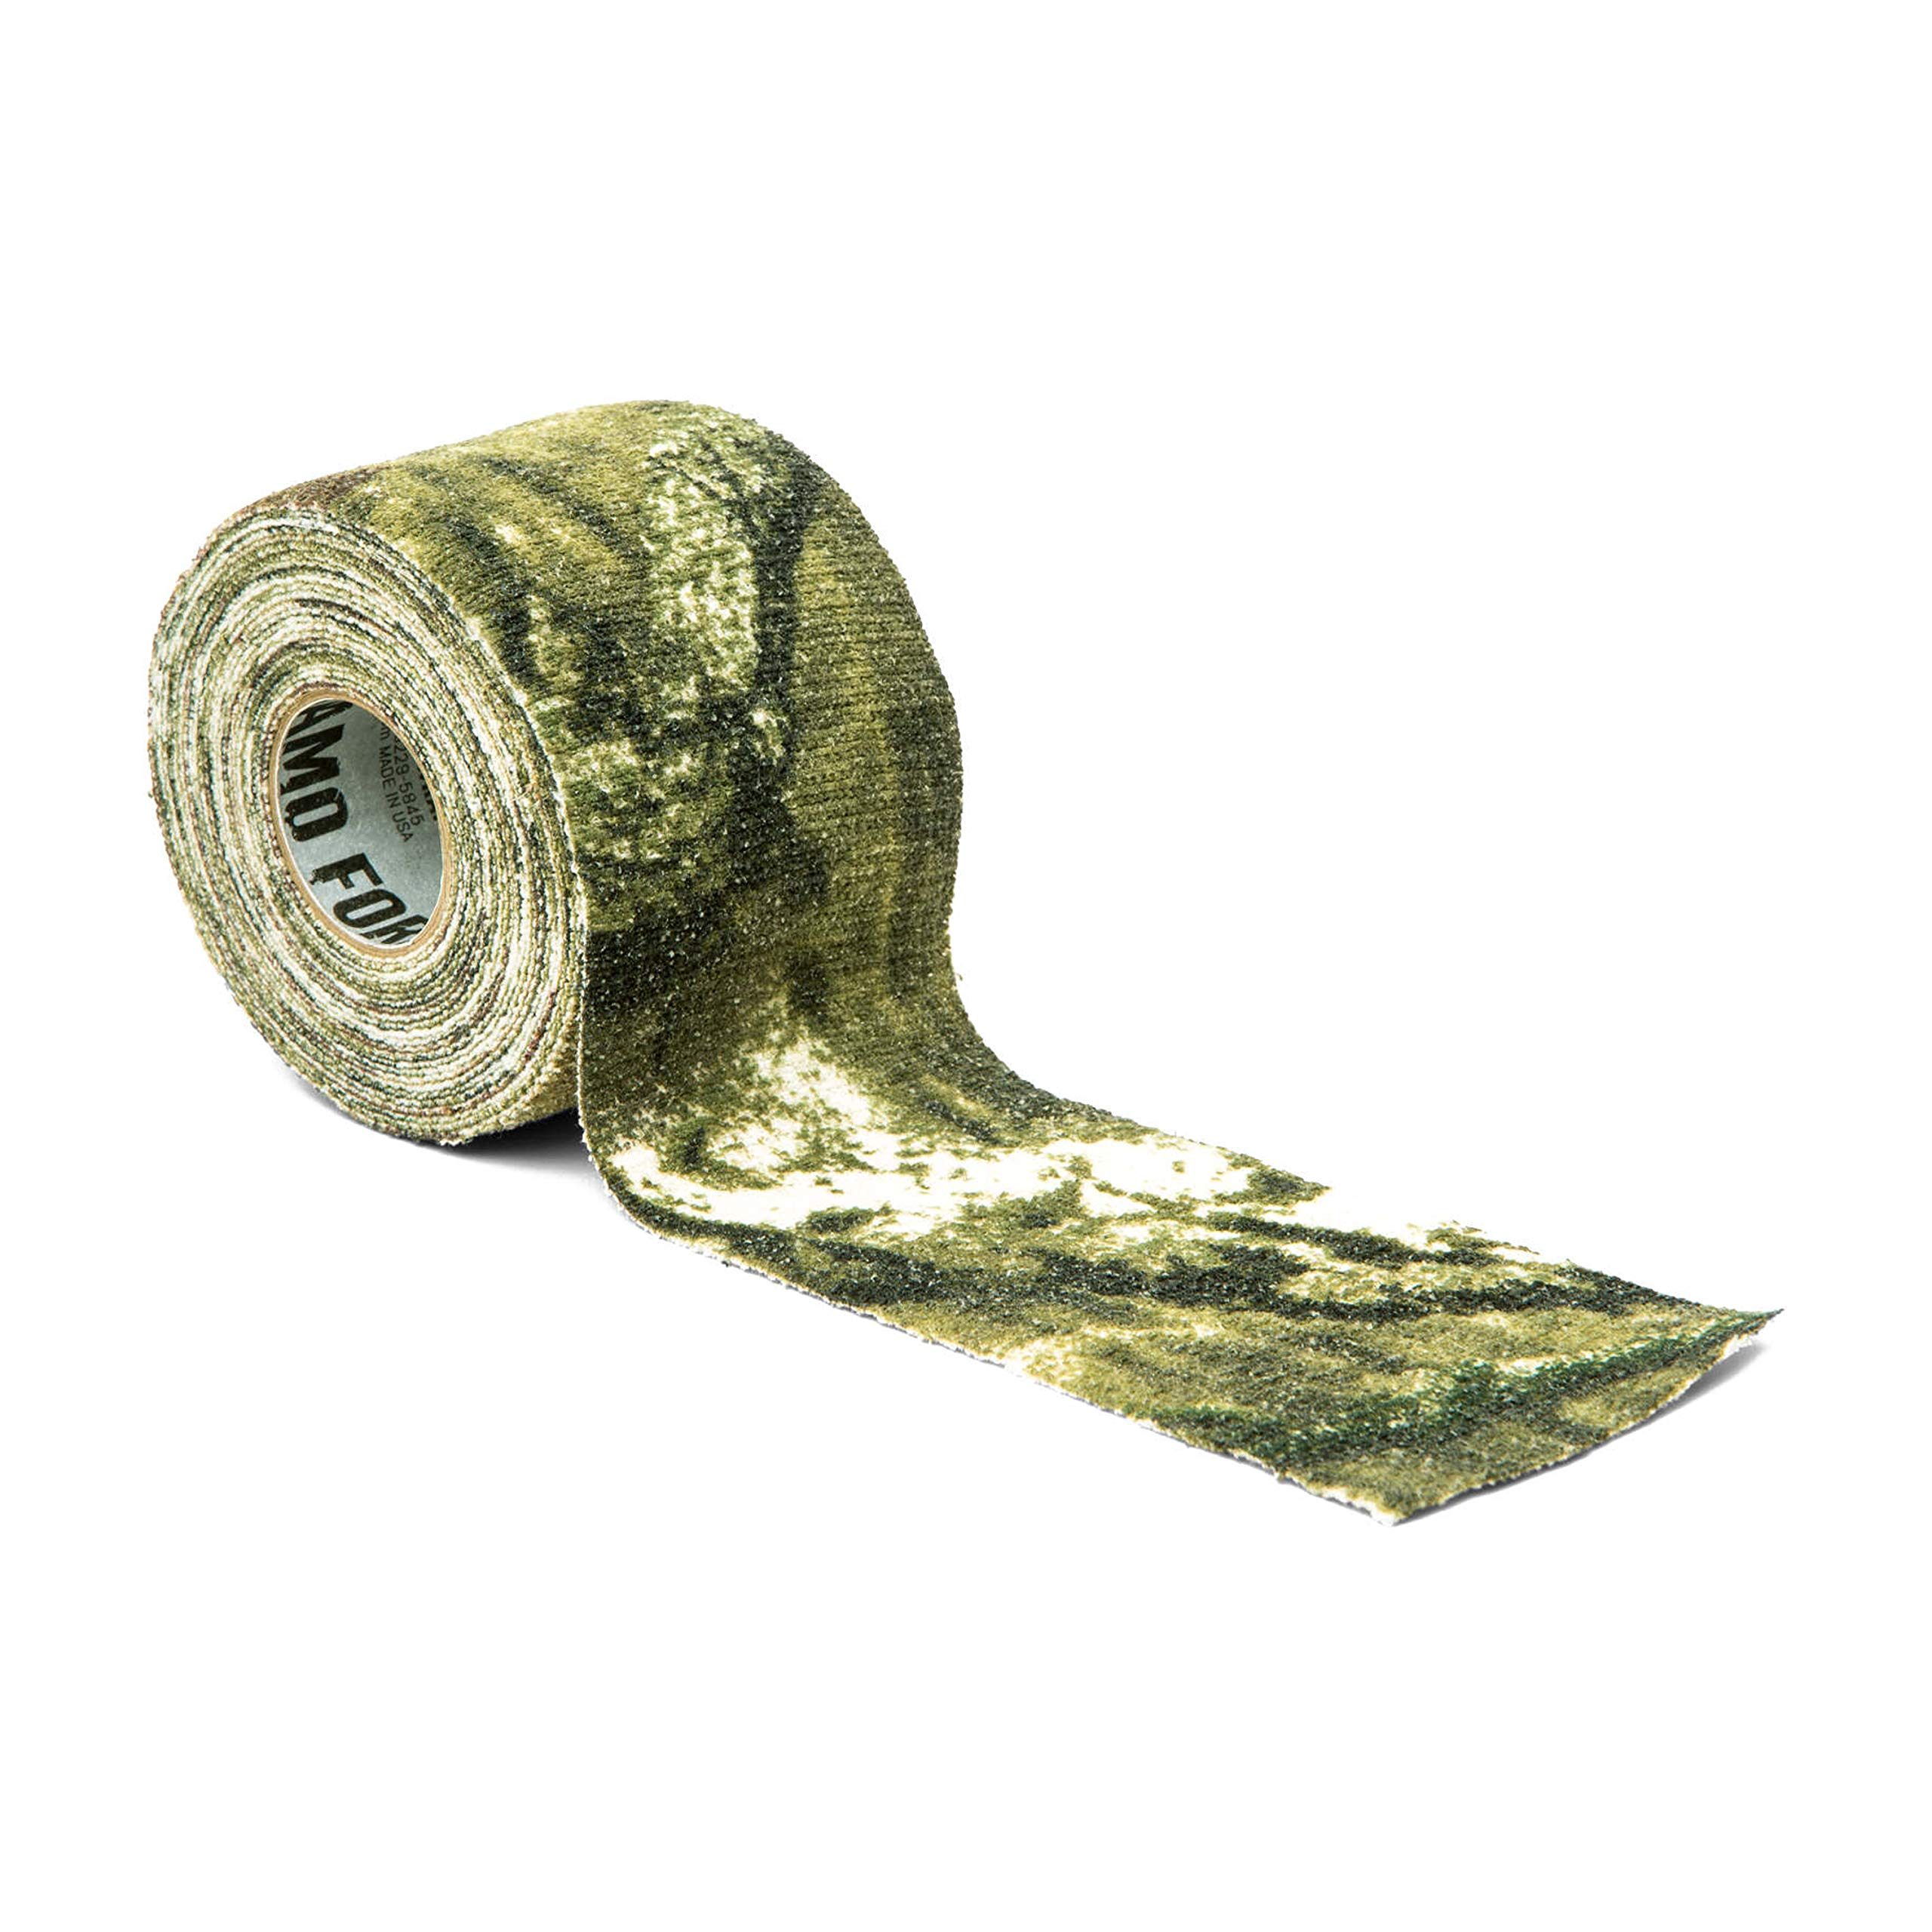 GEAR AID Camo Form Self-Cling and Reusable Camouflage Wrap, Mossy Oak Break Up Infinity, 2'' x 144'' Roll by GEAR AID